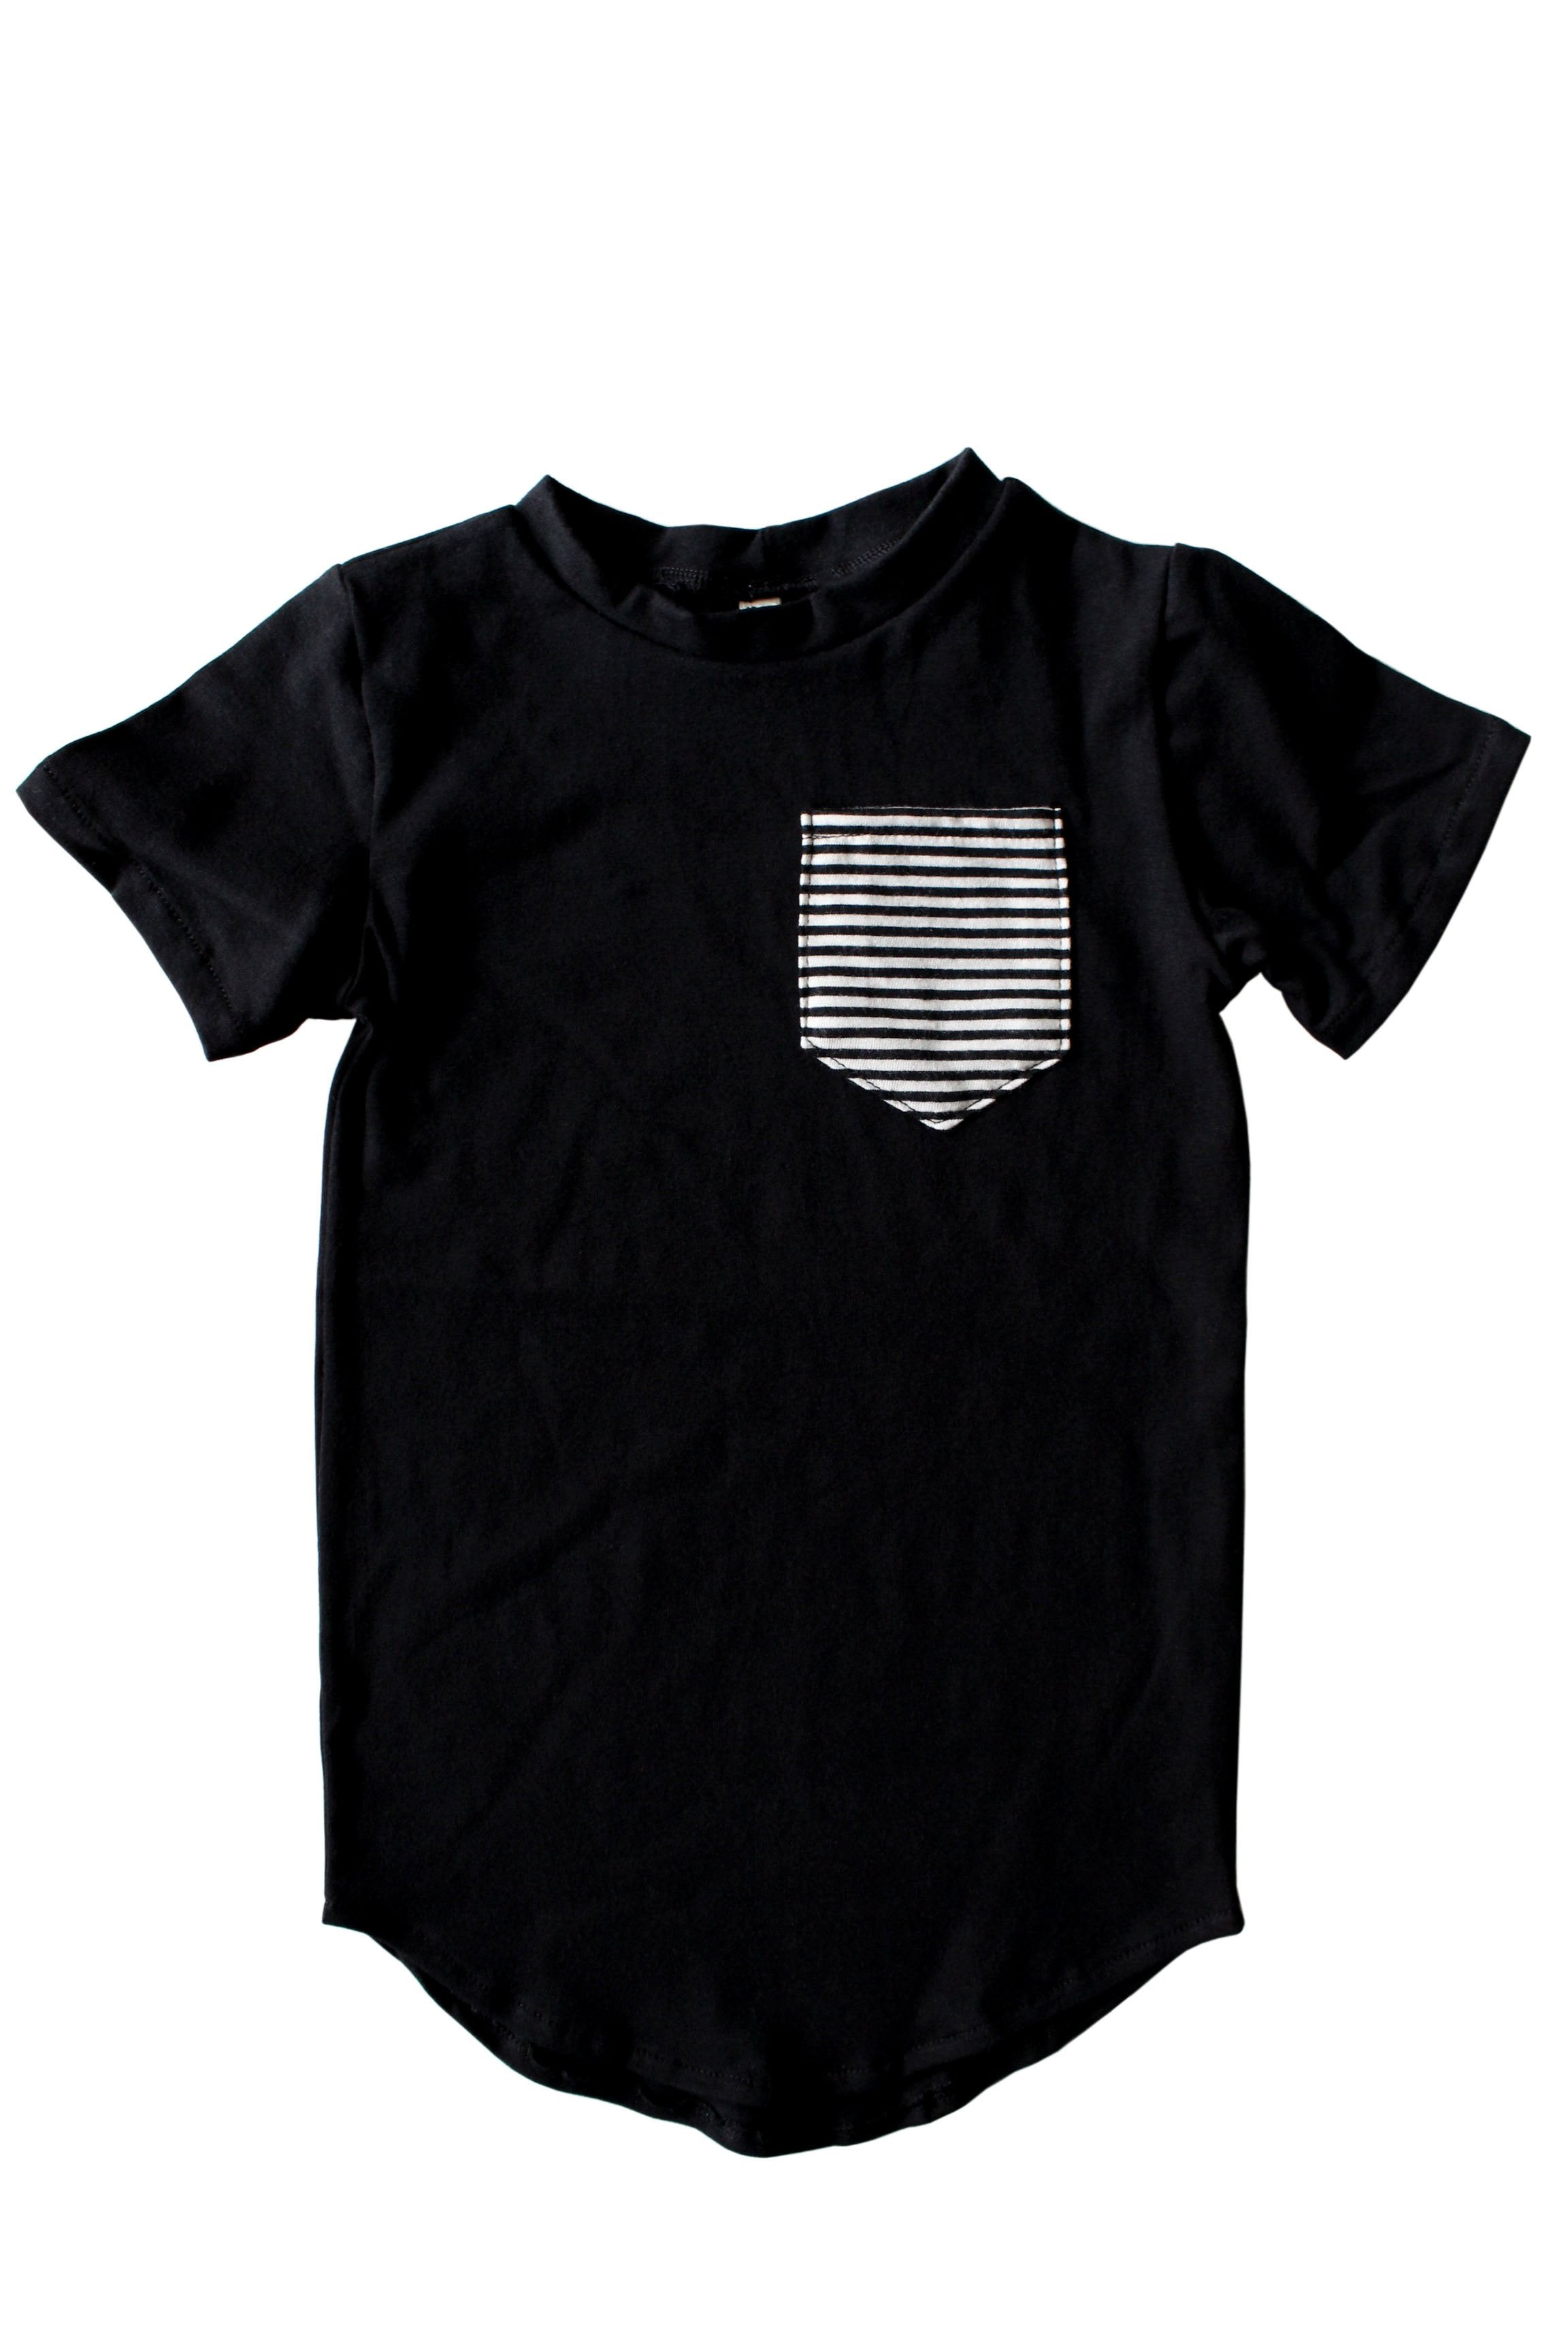 Tail Pocket Tee | Black & B/W Stripe